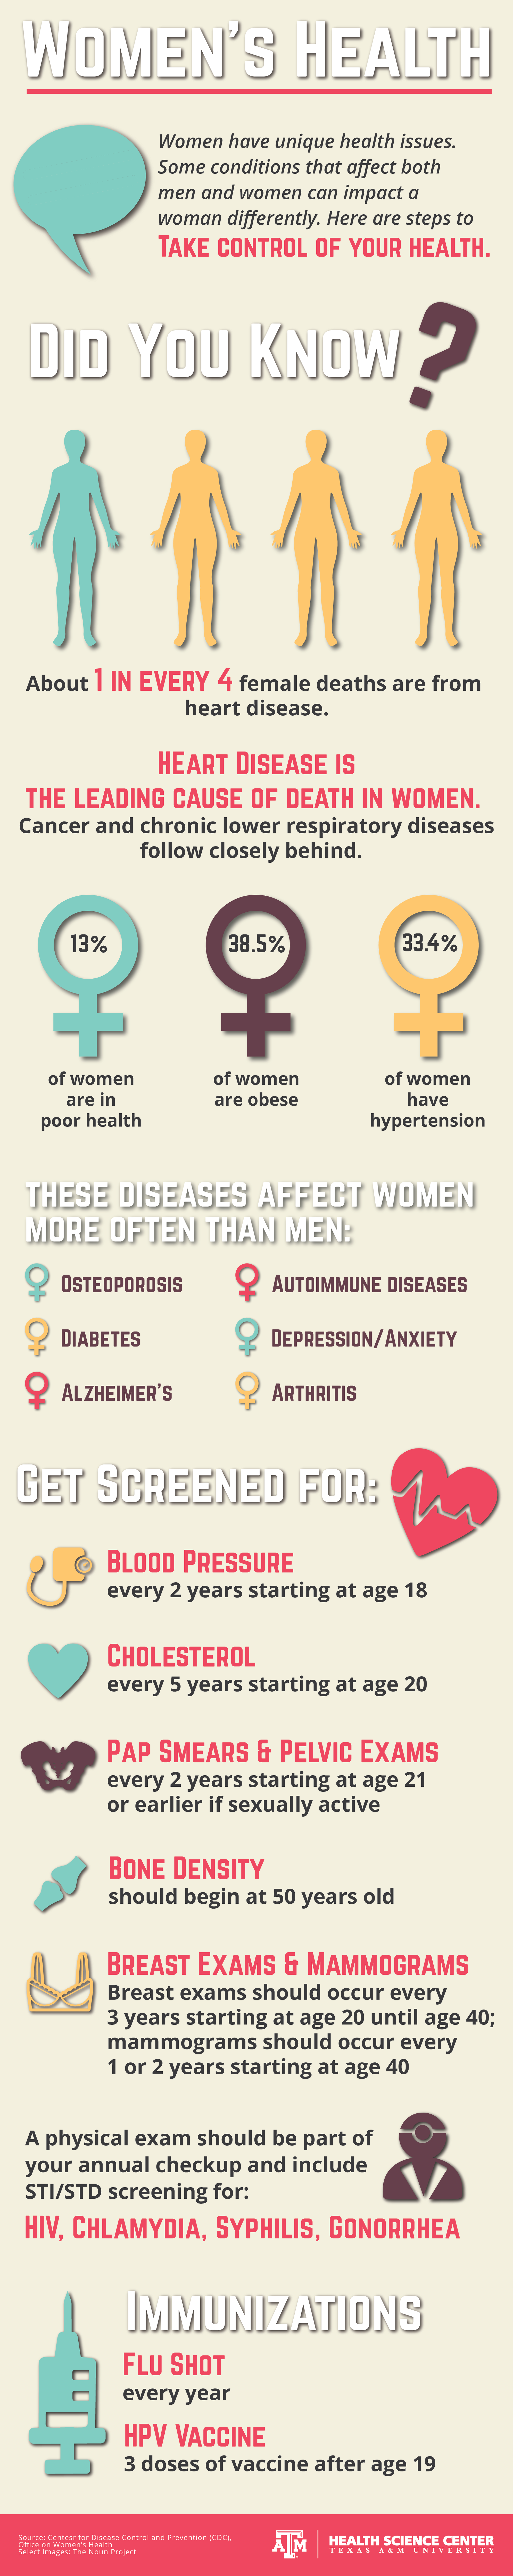 Women's Health infographic with stats, screenings and dieseases